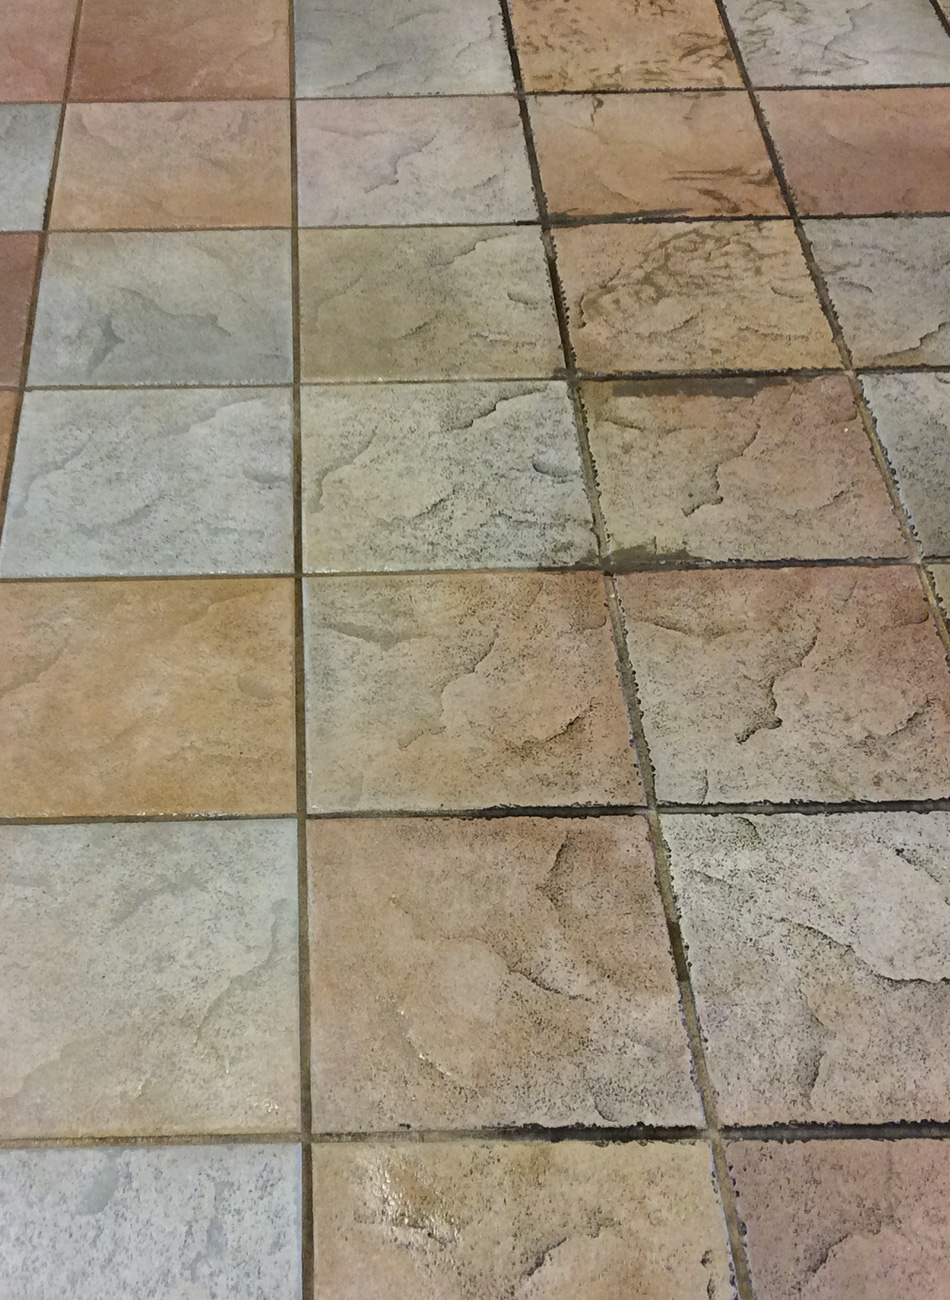 south-florida-grout-cleaning-tile-cleaning